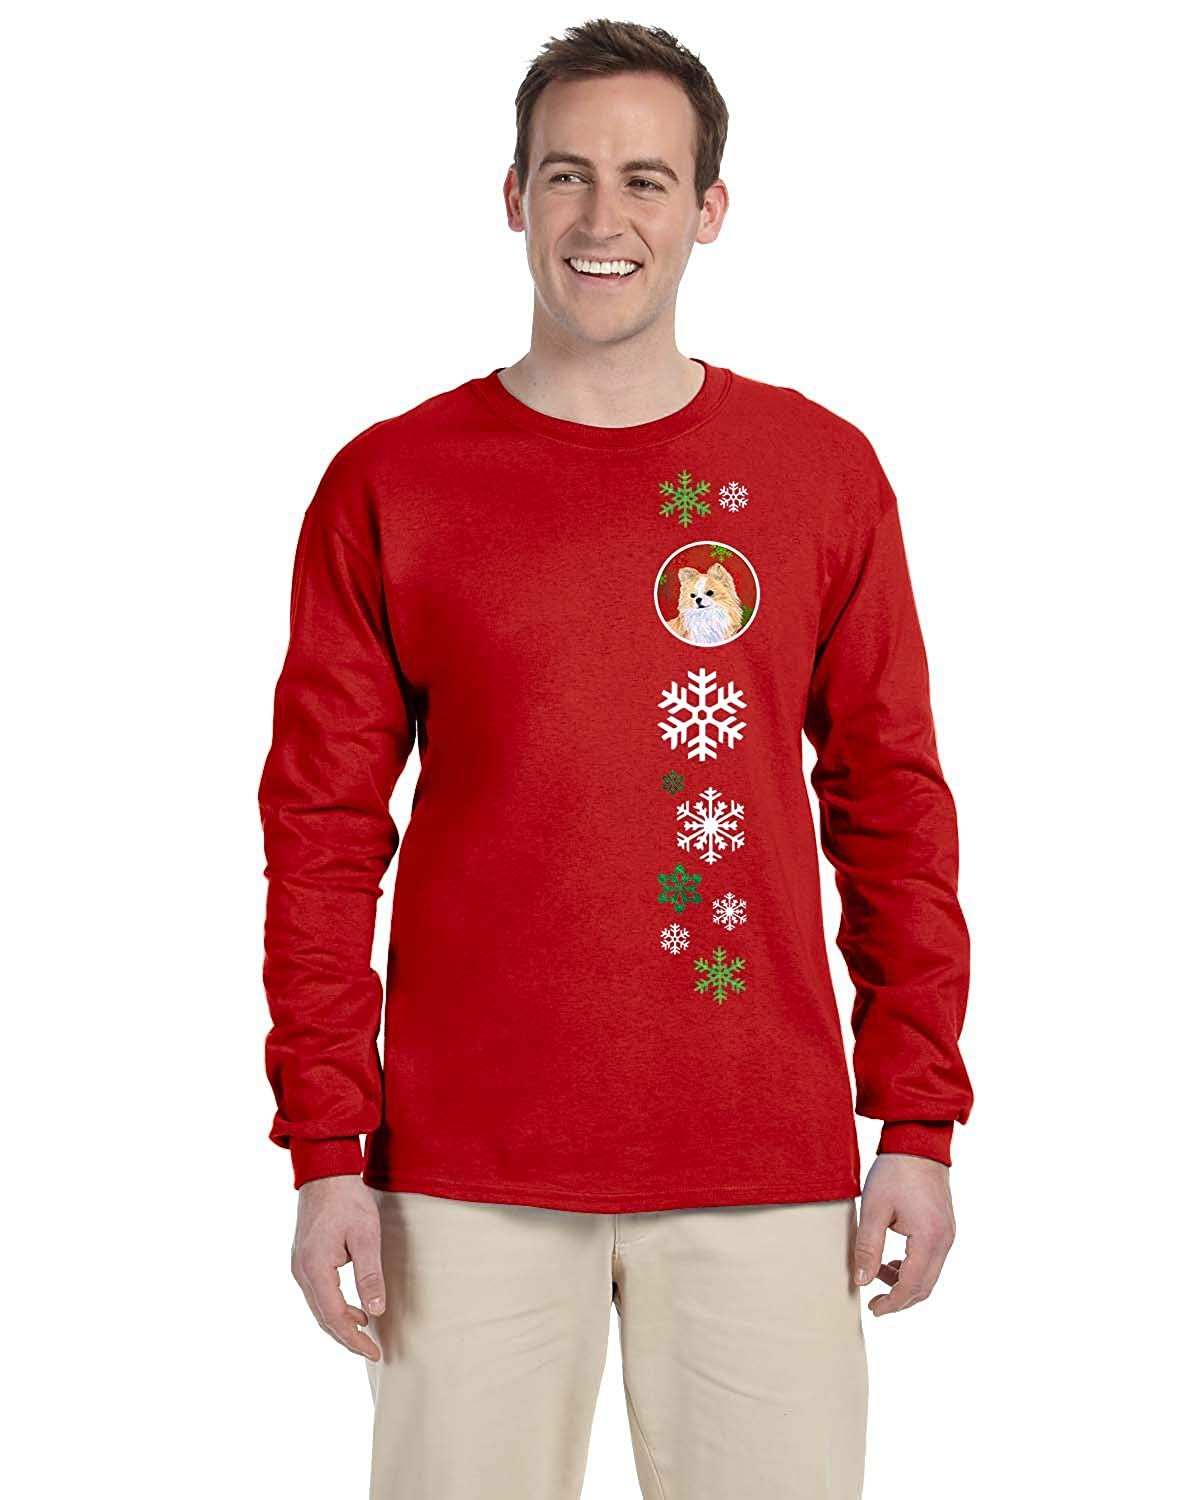 Carolines Treasures SS4680-LS-RED-2XL Chihuahua Red Snowflakes Long Sleeve Red Unisex Tshirt 2XL Multicolor 2XL